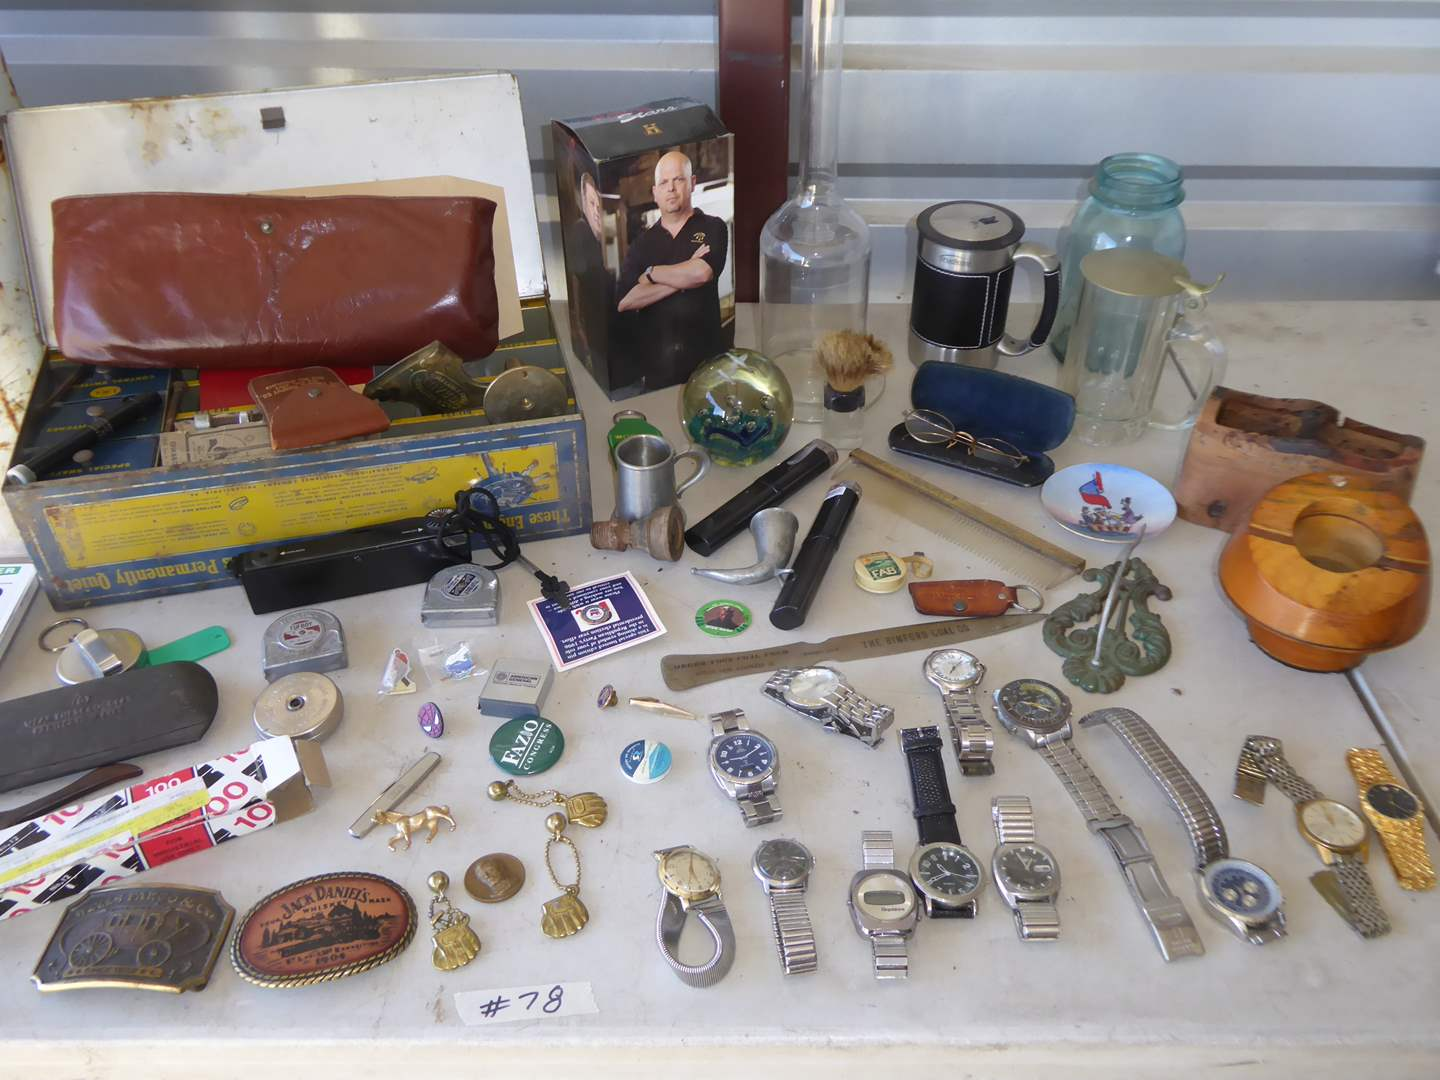 Lot # 78 - Vintage Collectibles - Watches, Belt Buckles, Glasses, Leather Slippers & More  (main image)